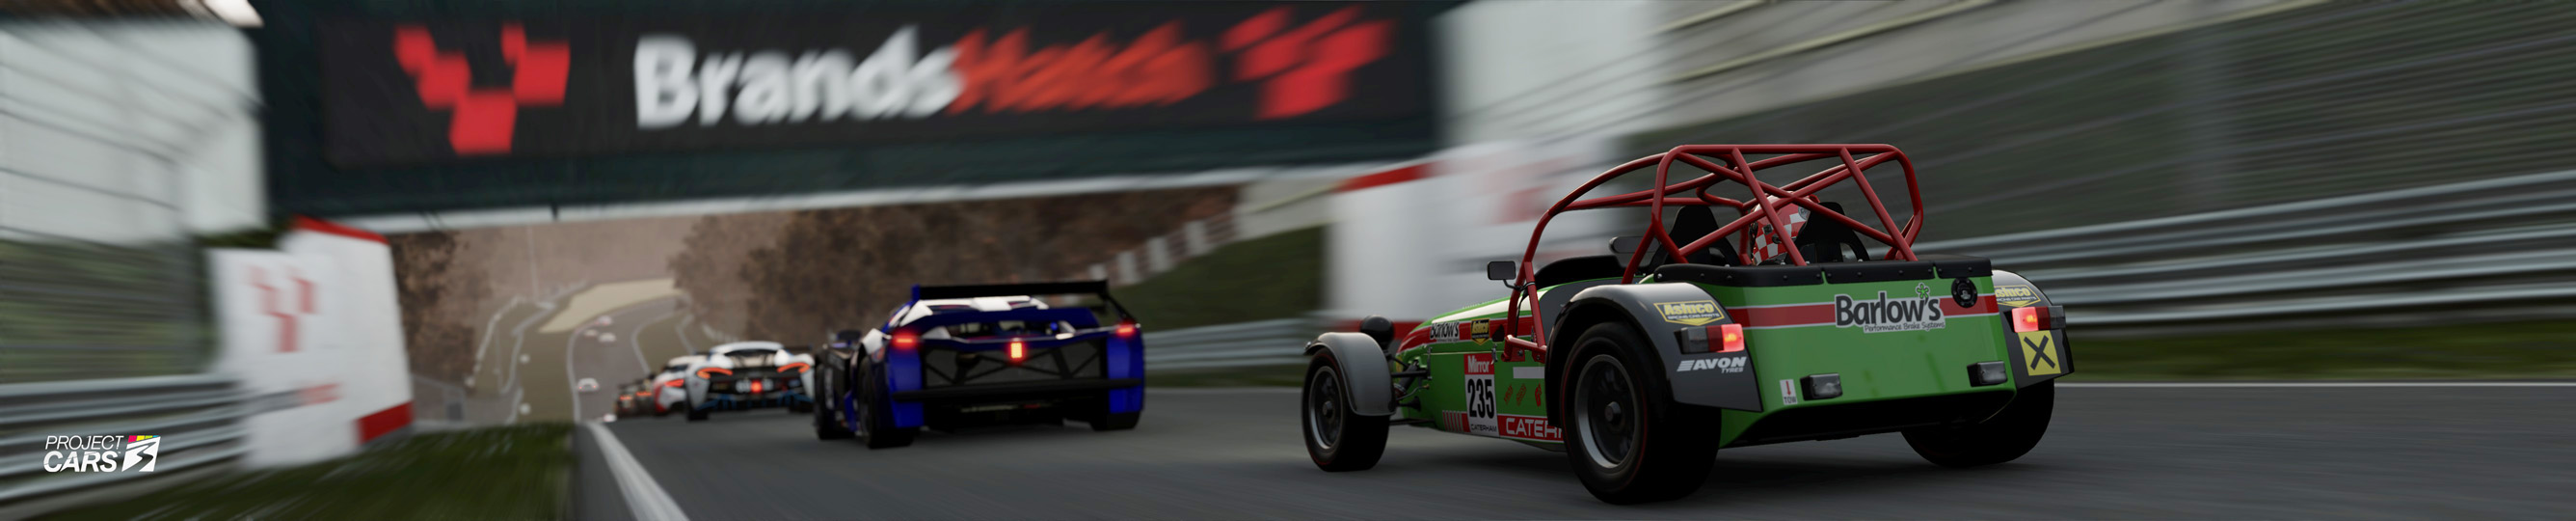 0 PROJECT CARS 3 CATERHAM 620R at BRANDS HATCH copy.jpg